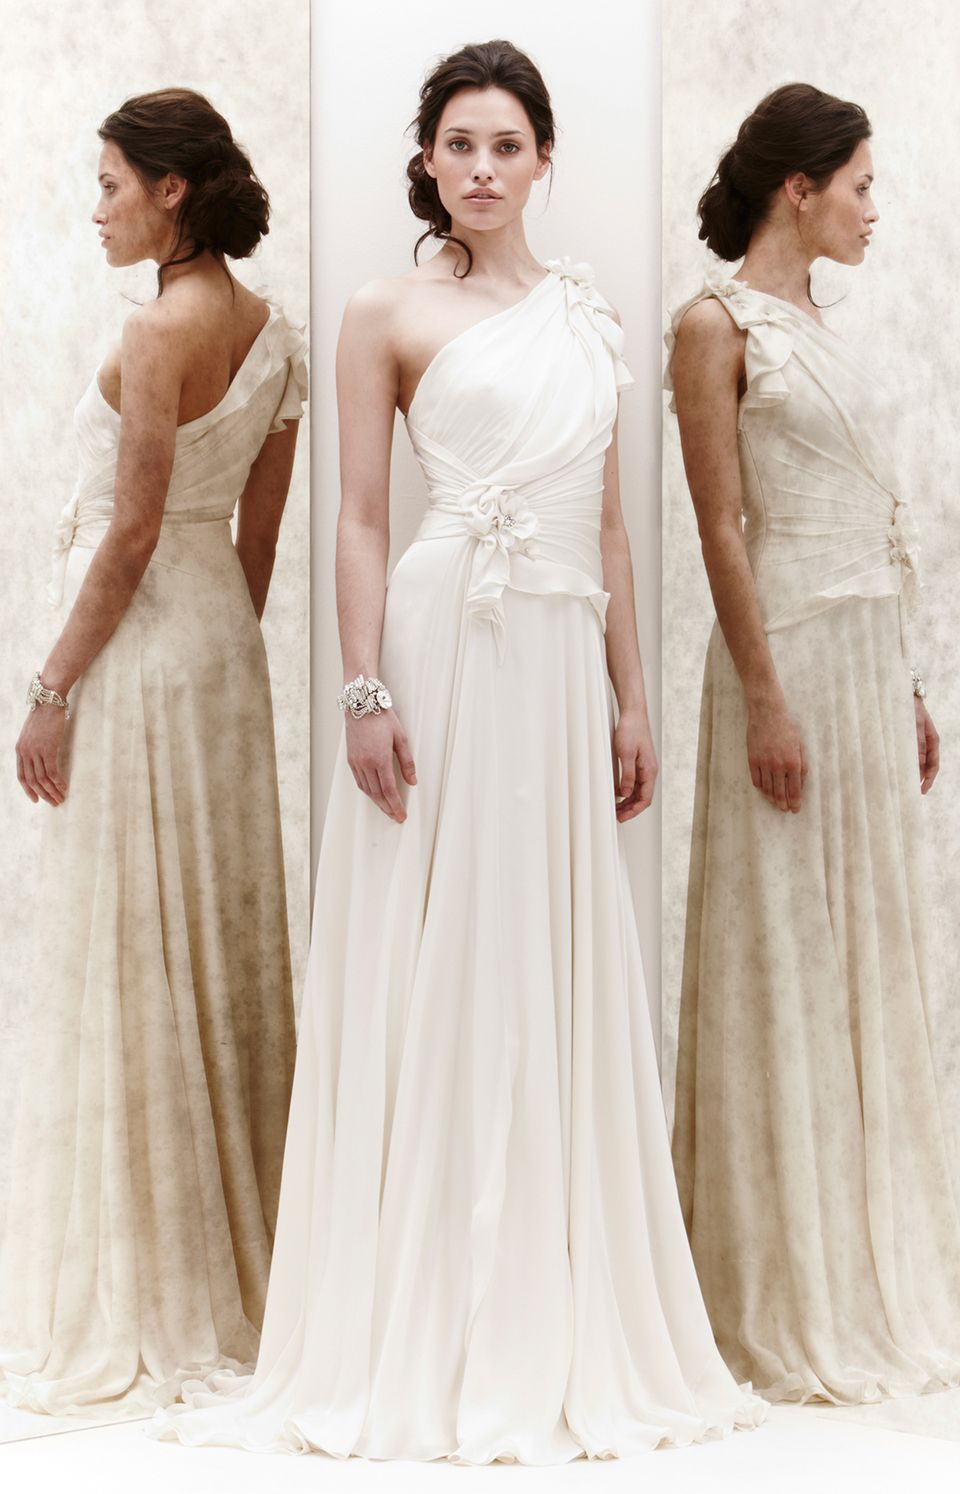 I just love how she stages everything too bridal 2013 collection has anyone ever ordered jenny packham freesia from mexpatproperties jenny packham bridal jenny packham wedding dresses jessica mcclintock ombrellifo Images